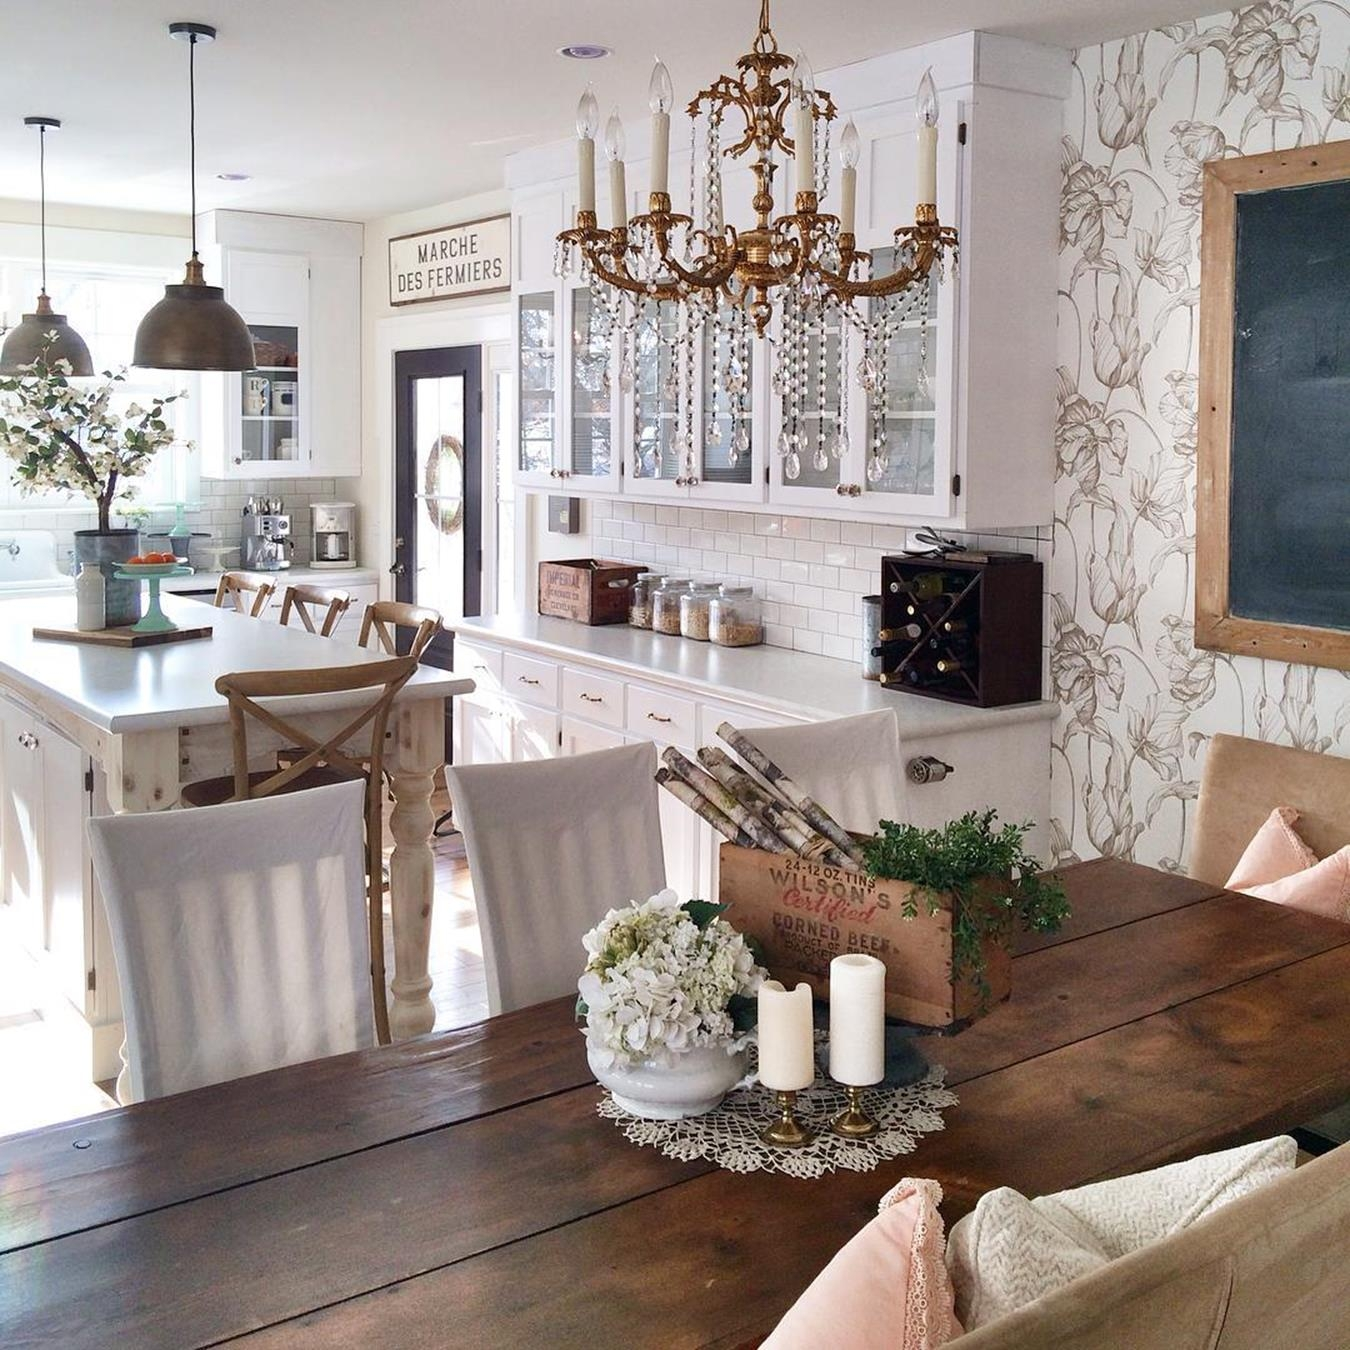 50+ French Country Kitchen Decor You'll Love In 2020